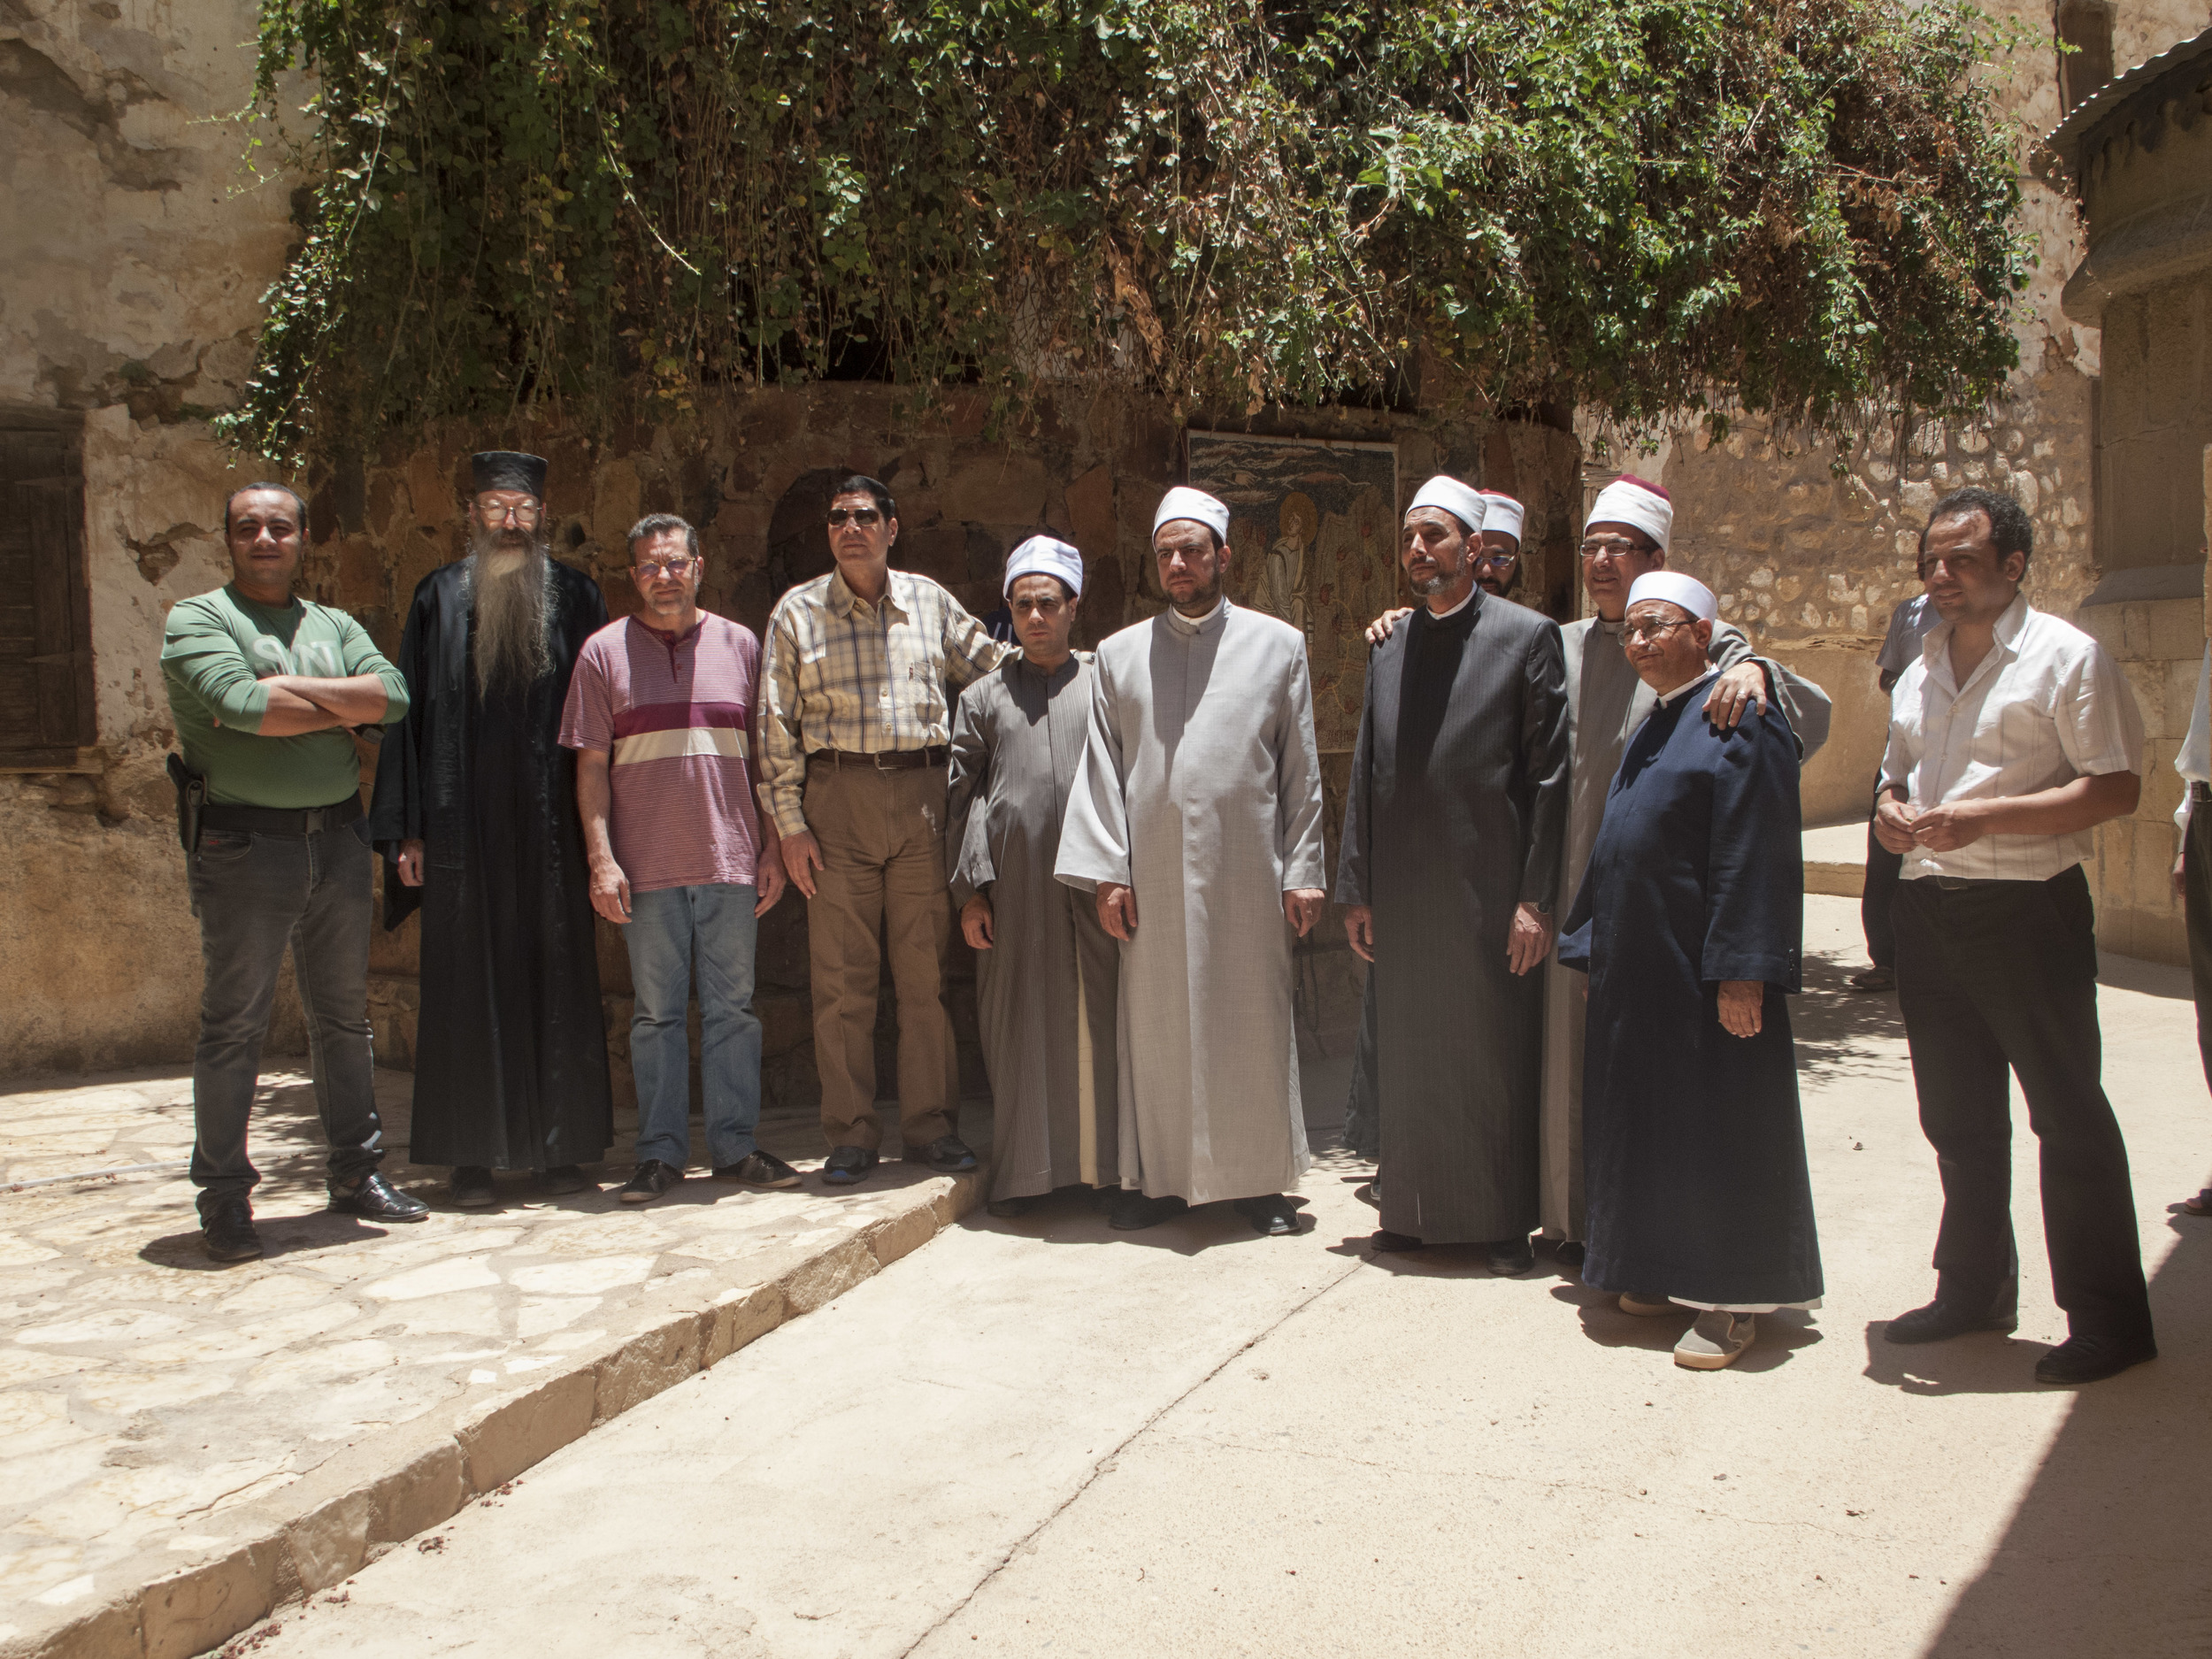 The delegation stood for a group photograph at the Burning Bush.